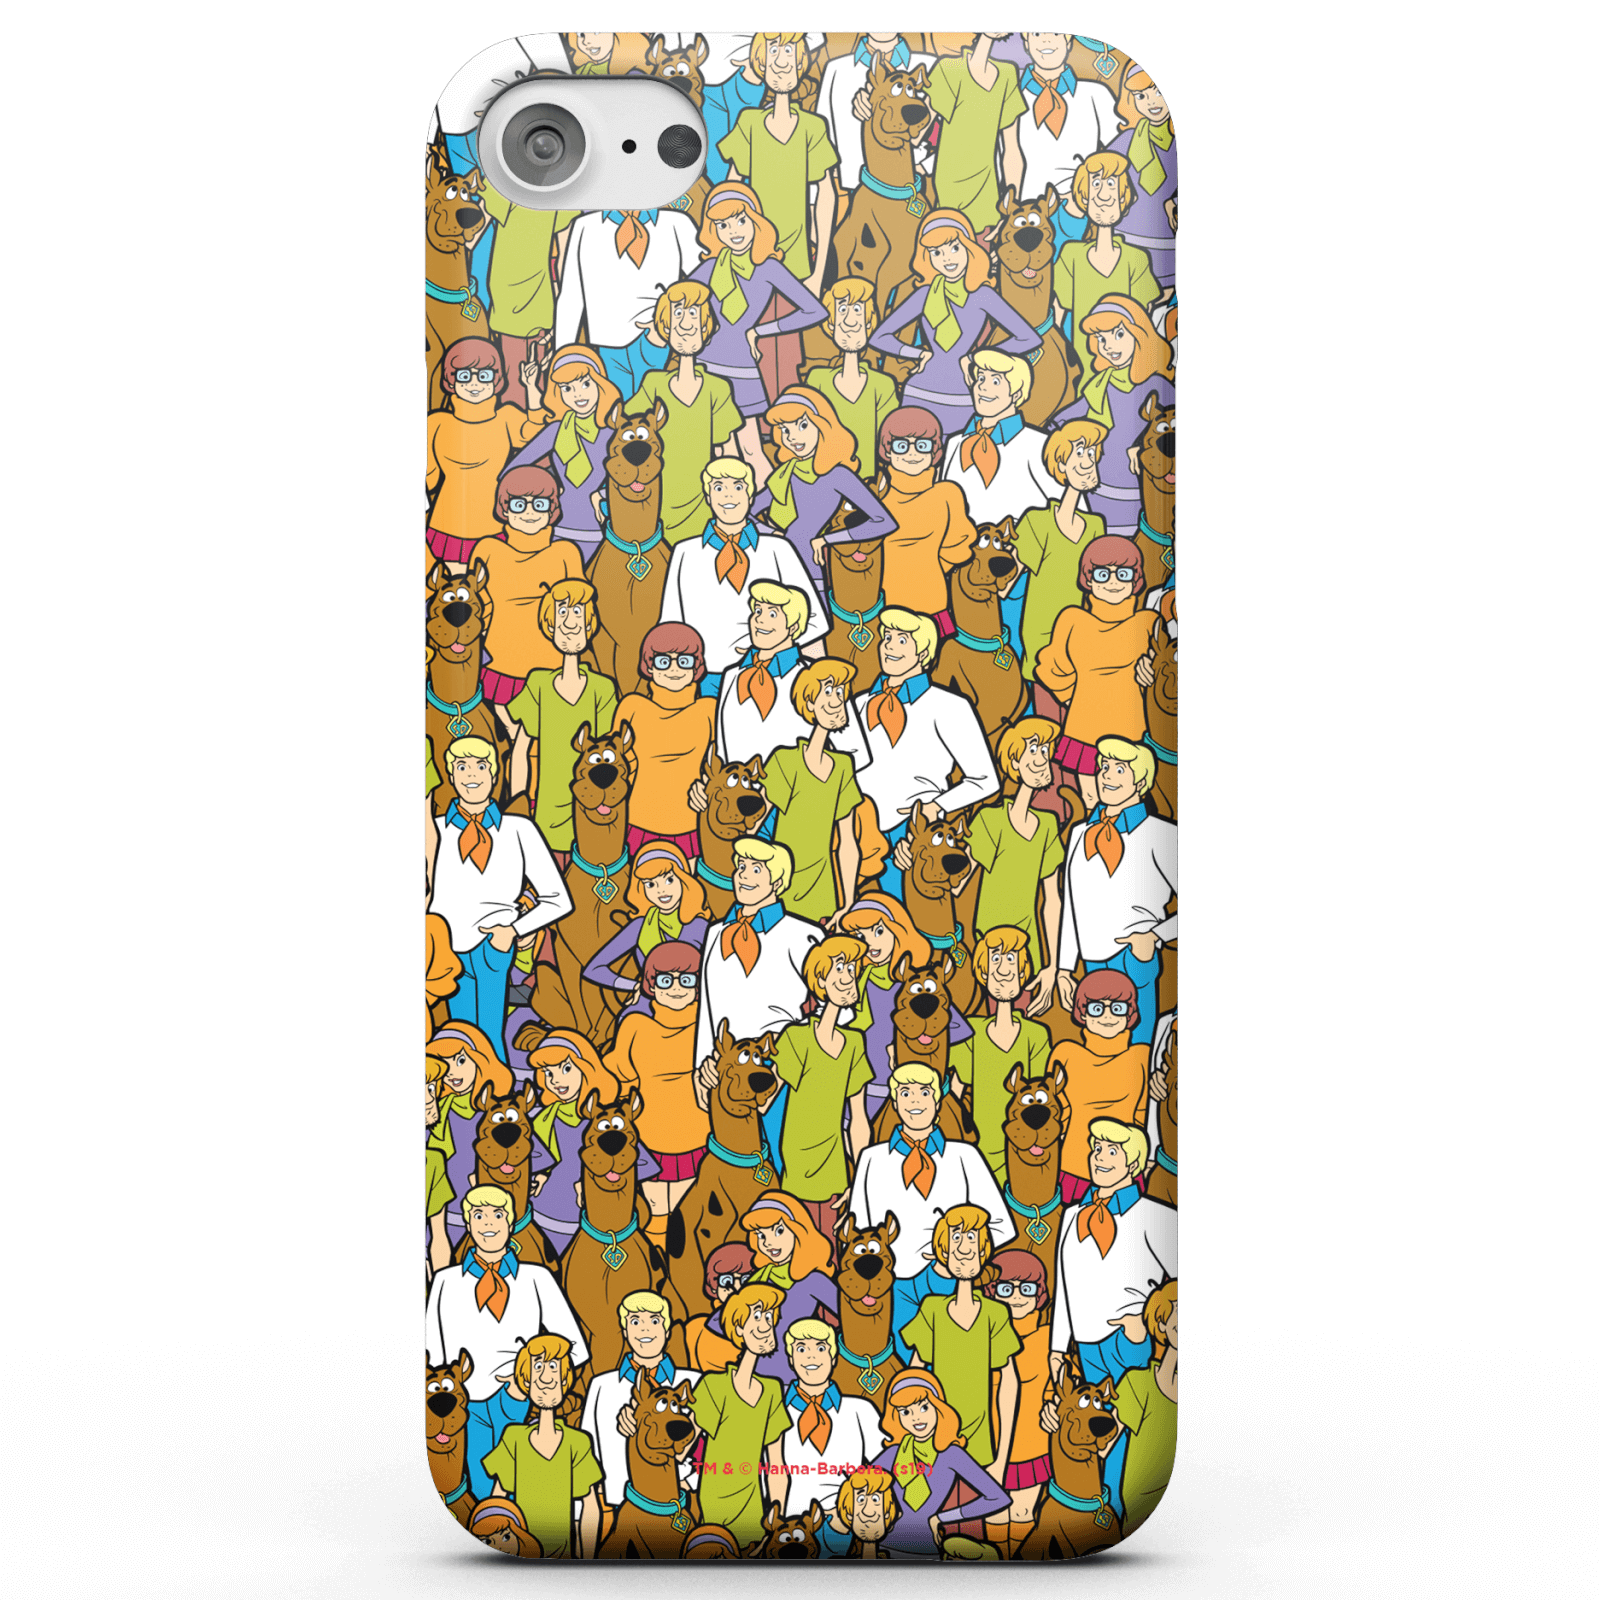 Funda Móvil Scooby-Doo Character Pattern para iPhone y Android - Samsung S10E - Carcasa rígida - Mate de Scooby Doo